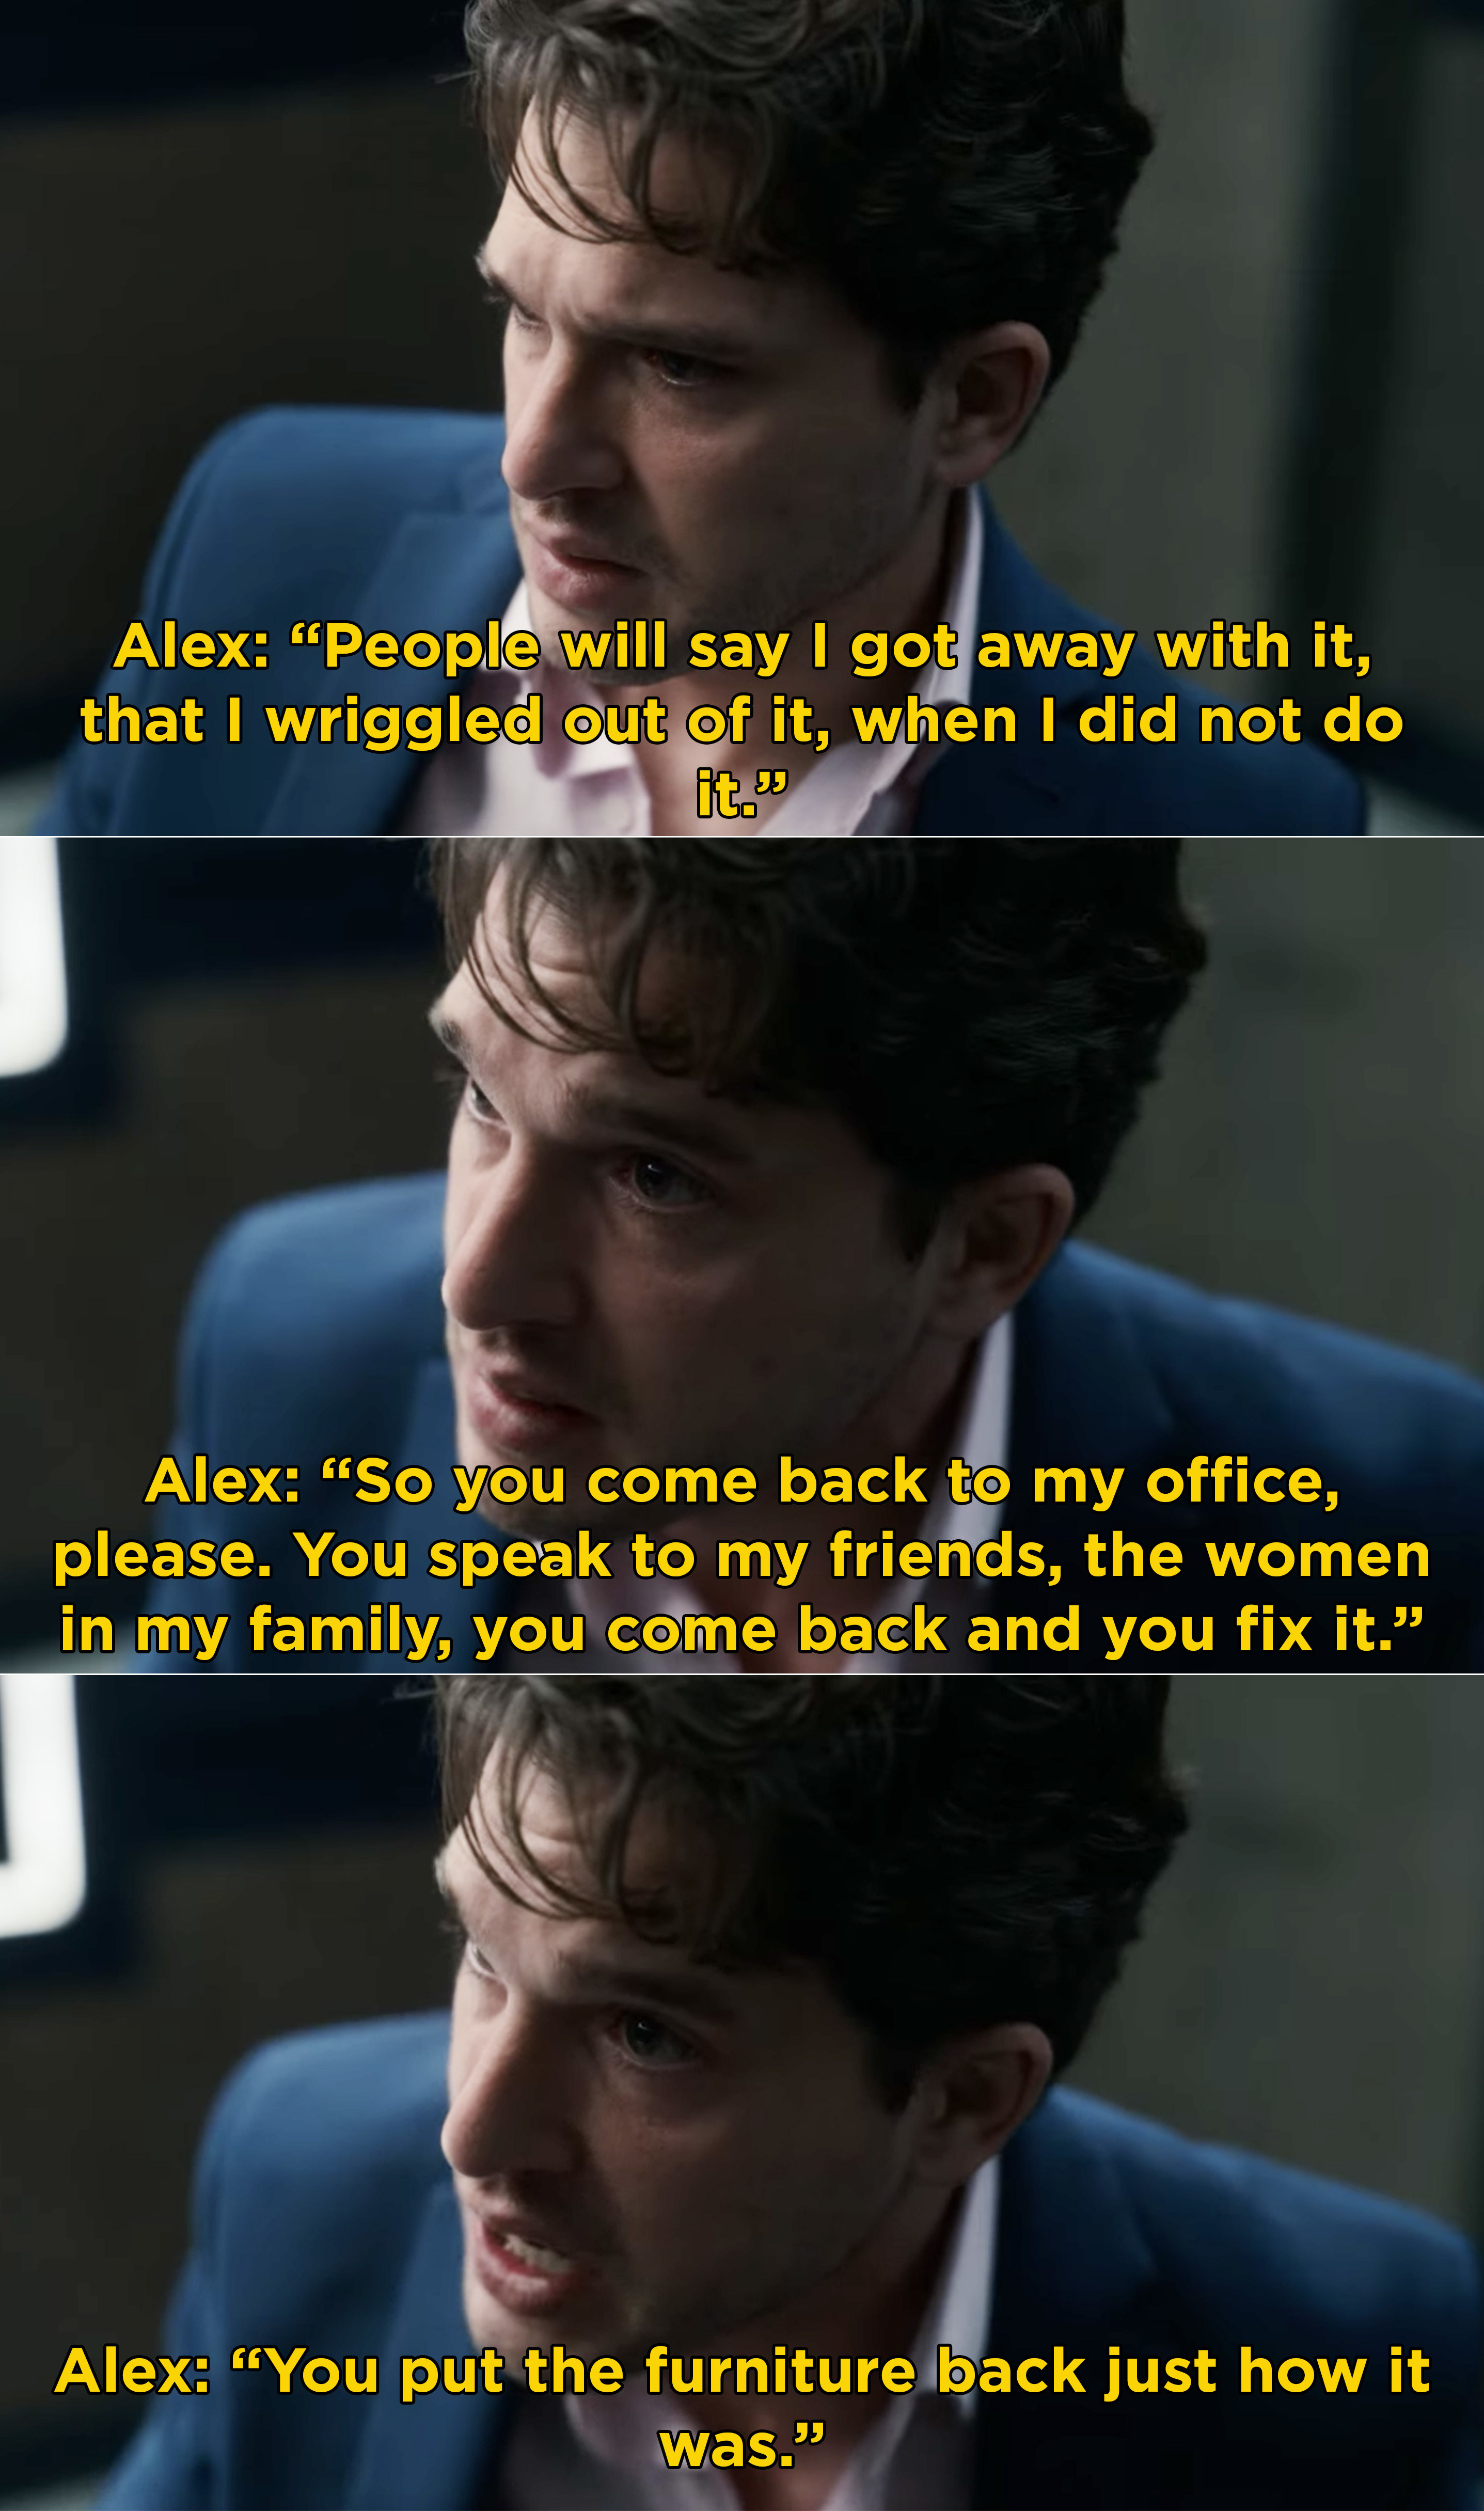 Alex pleading that the cops go and talk to his family and fix everything